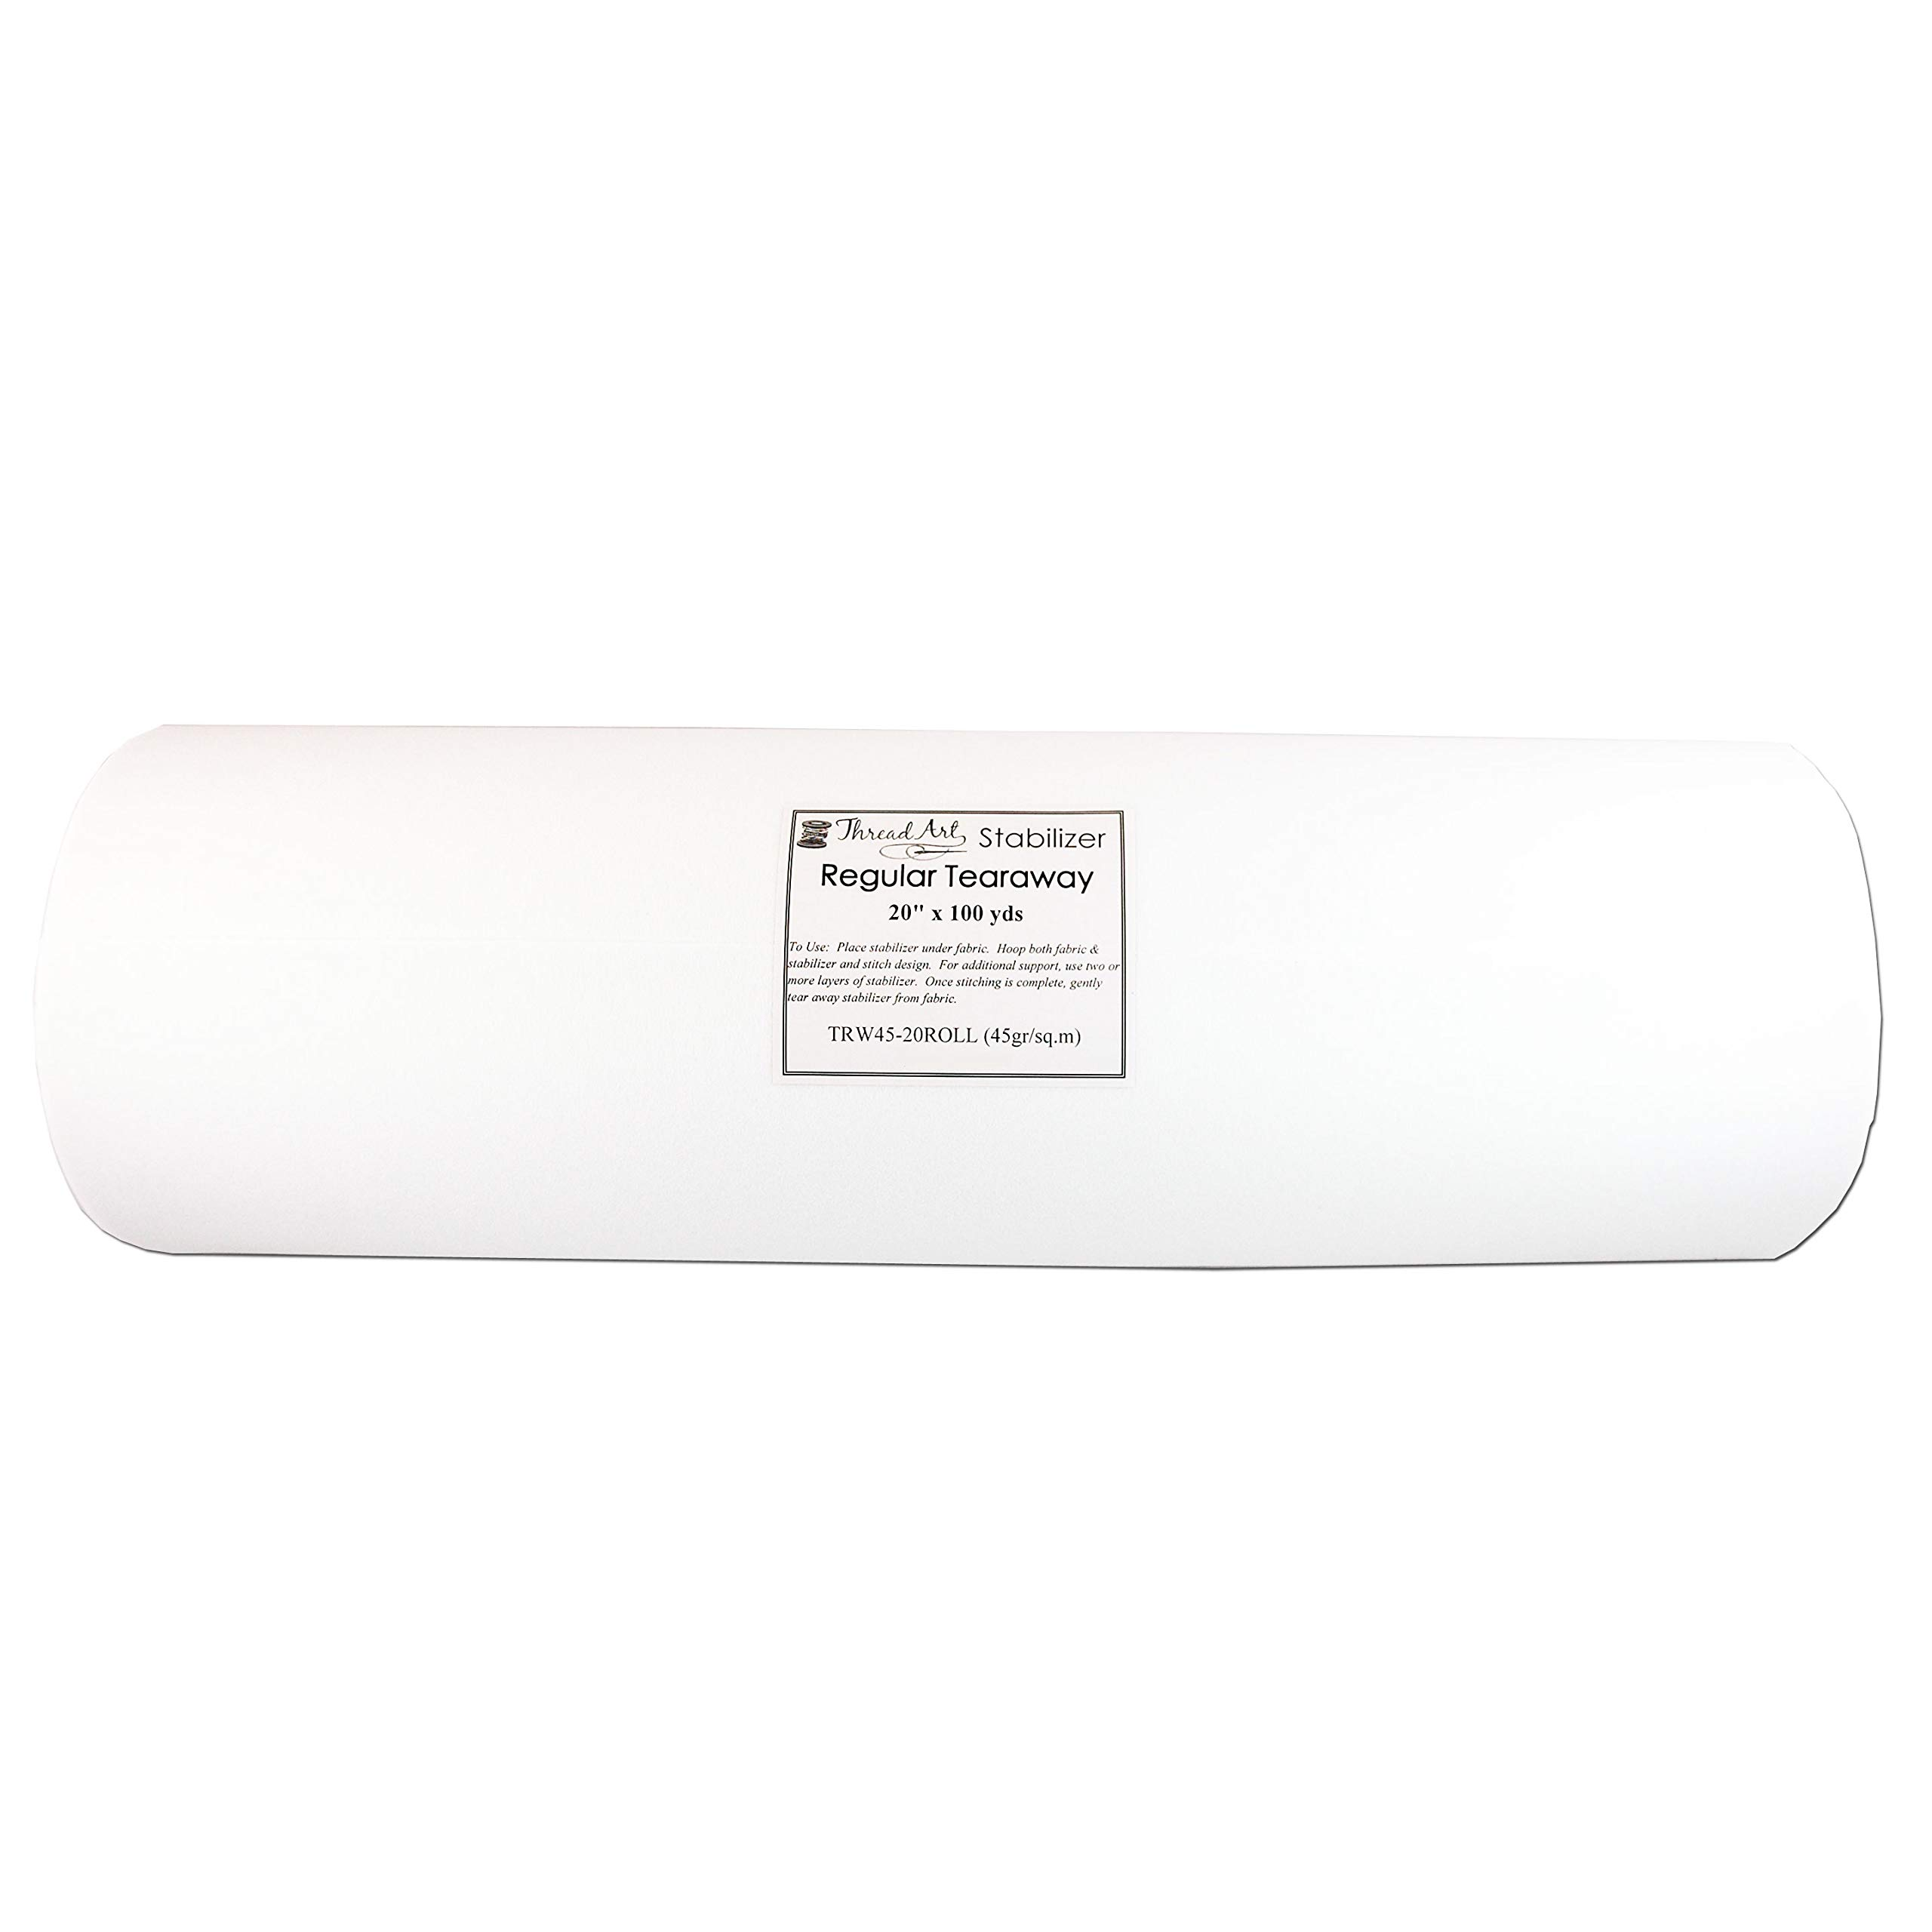 Threadart Tearaway Embroidery Stabilizer | 1.6 oz Medium Weight | 20'' x 100 yd roll | For Machine Embroidery | Also Available Over 20 Additional Styles of Cutaway, Washaway, Tearaway, Sticky in Rolls and Precut Sheets by Threadart